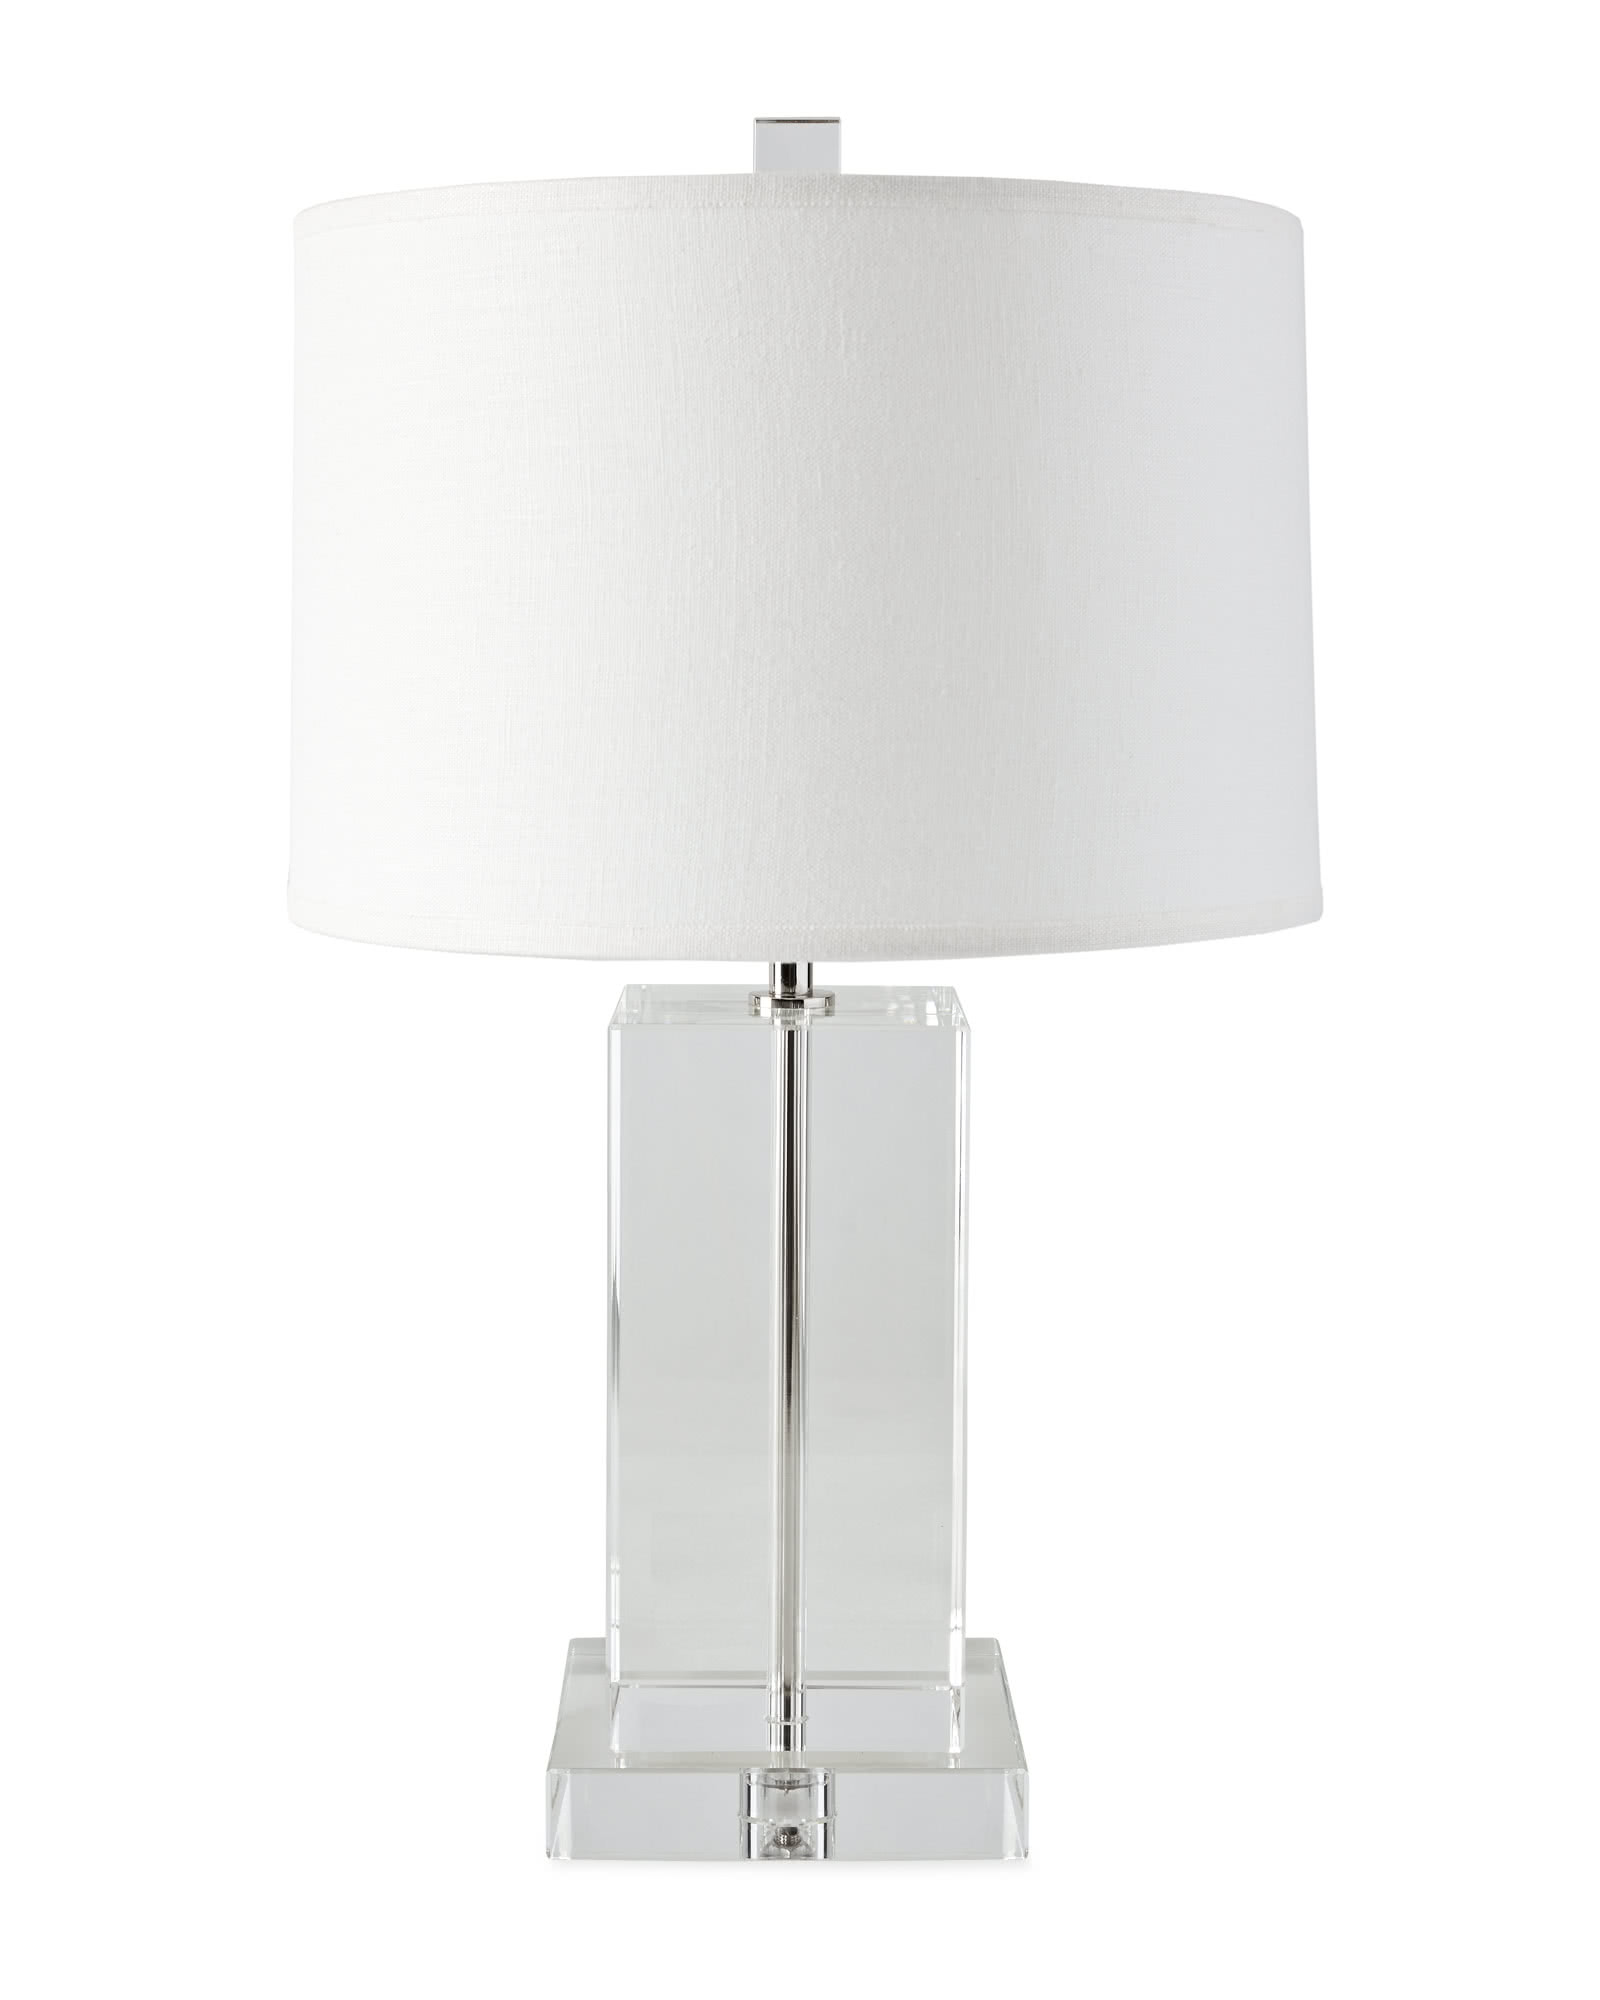 Darby Crystal Table Lamp,